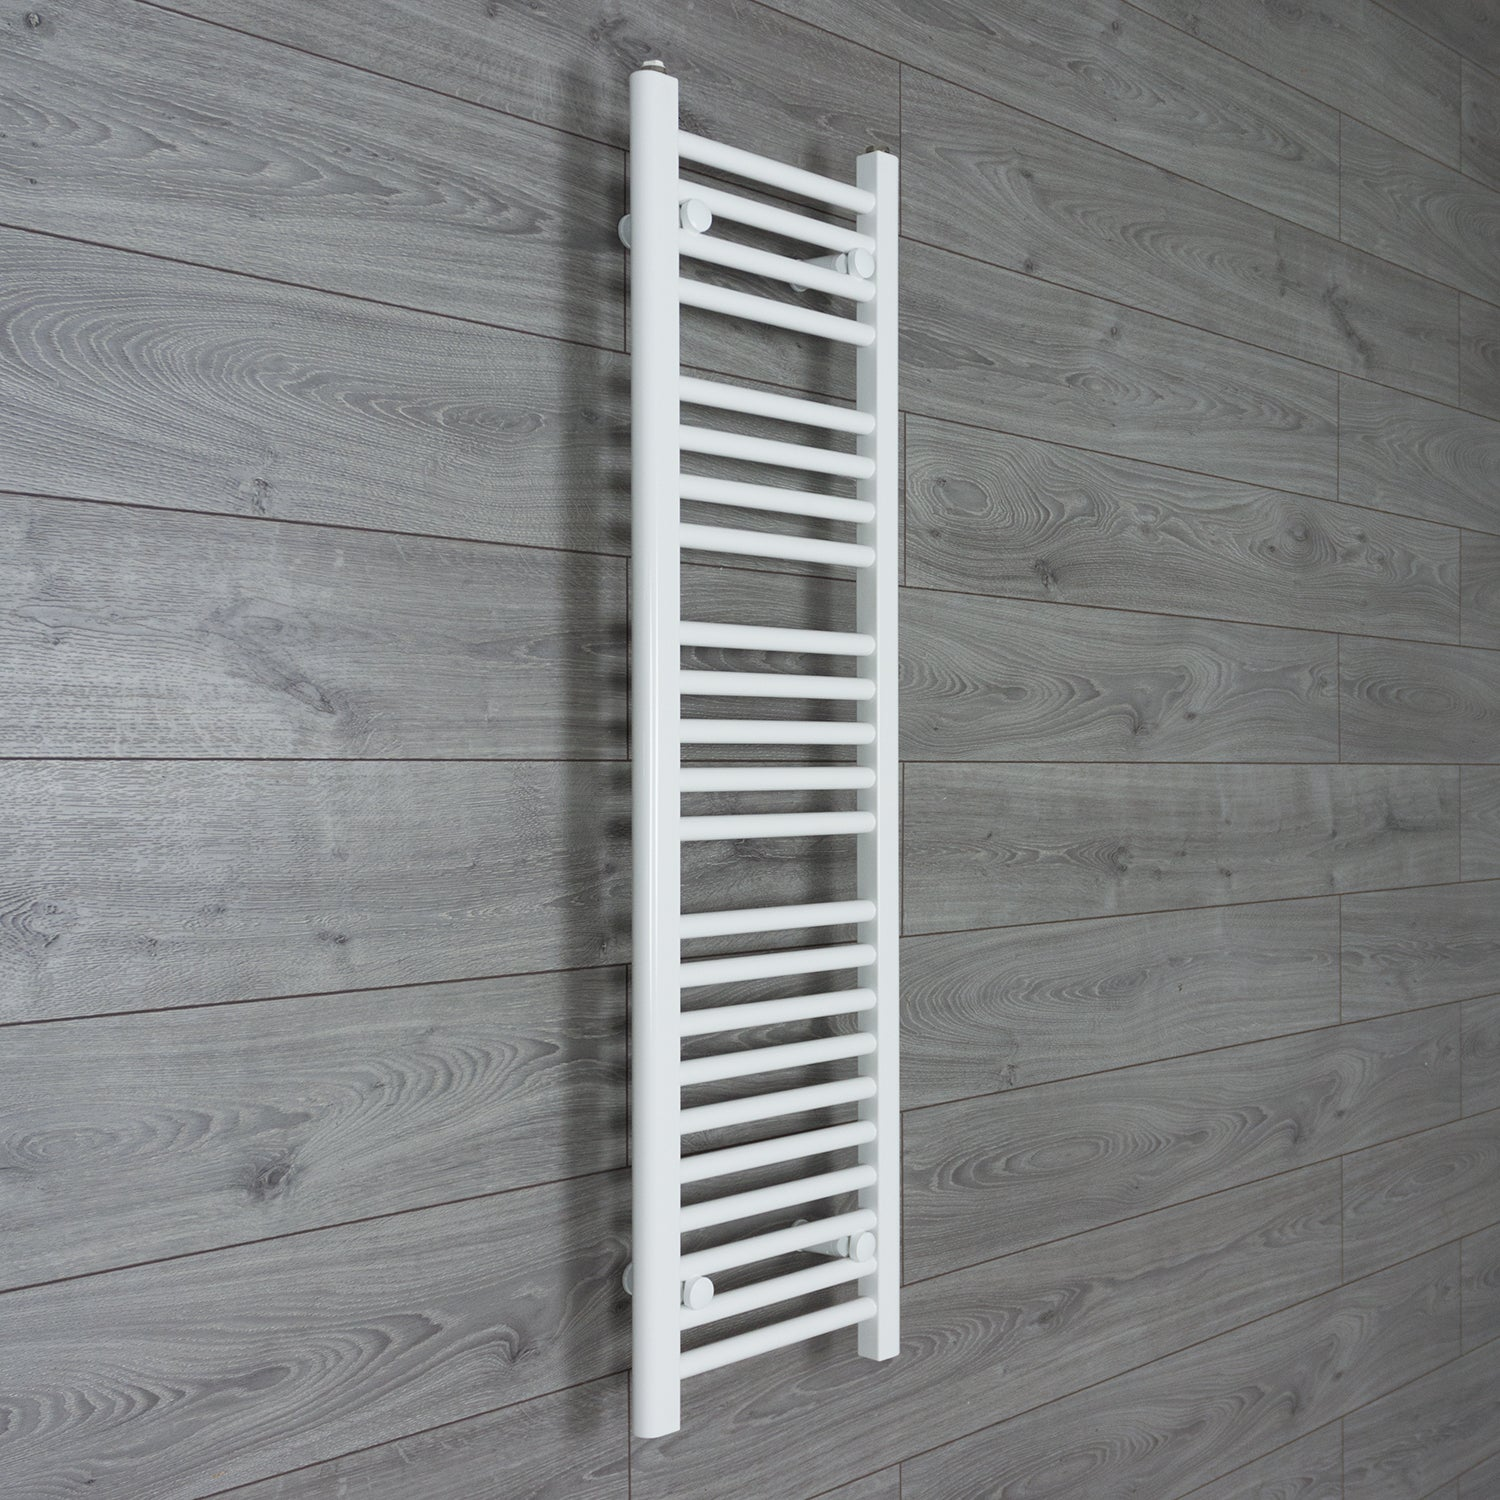 350mm Wide 1200mm High White Towel Rail Radiator